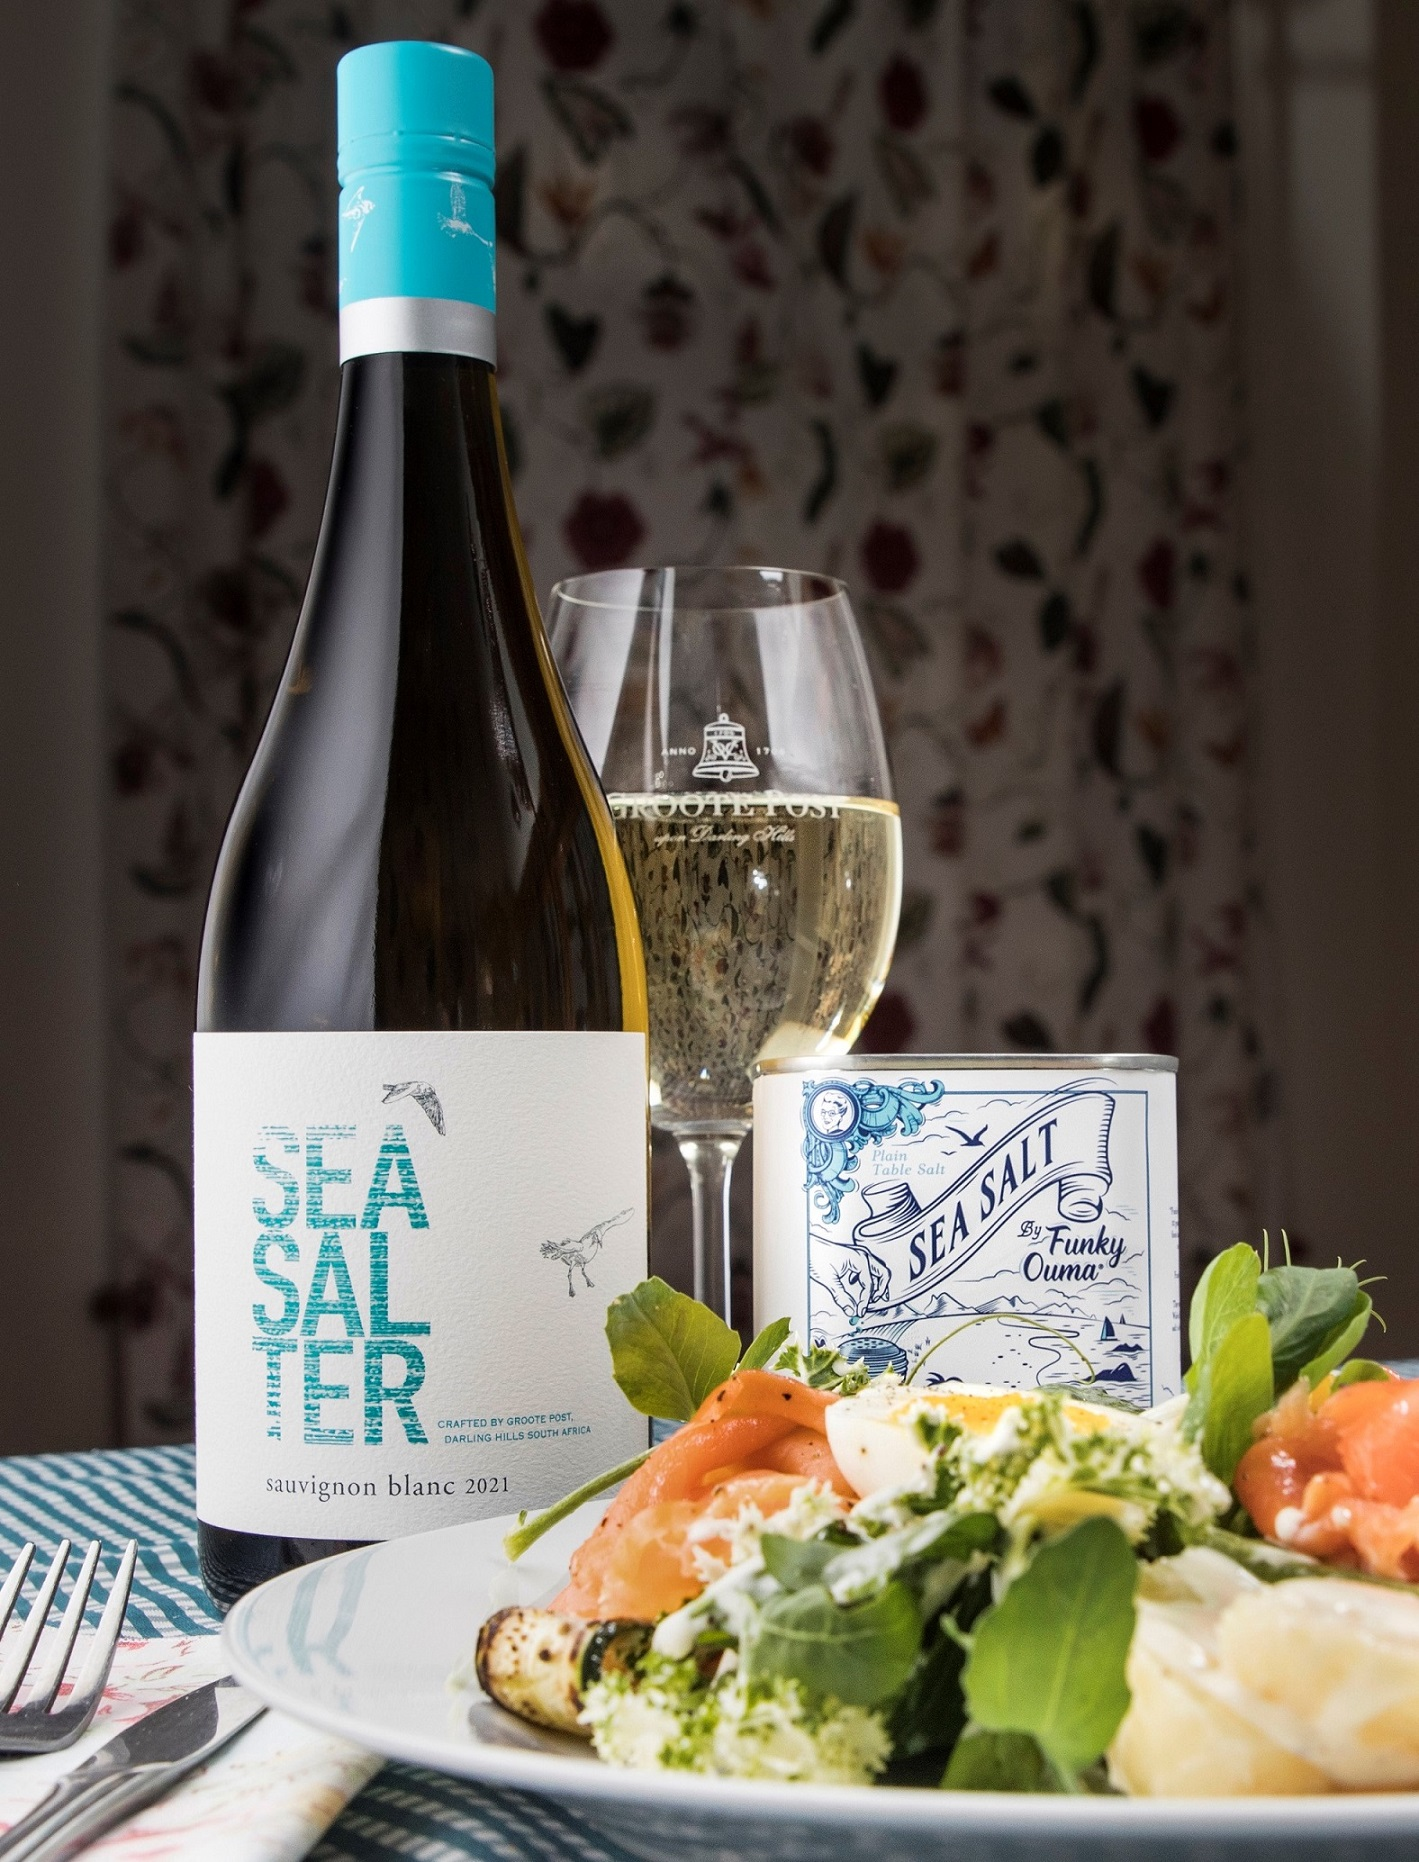 Groote Post Seasalter with Smoked Salmon Trout Salad and Funky Ouma Sea Salt